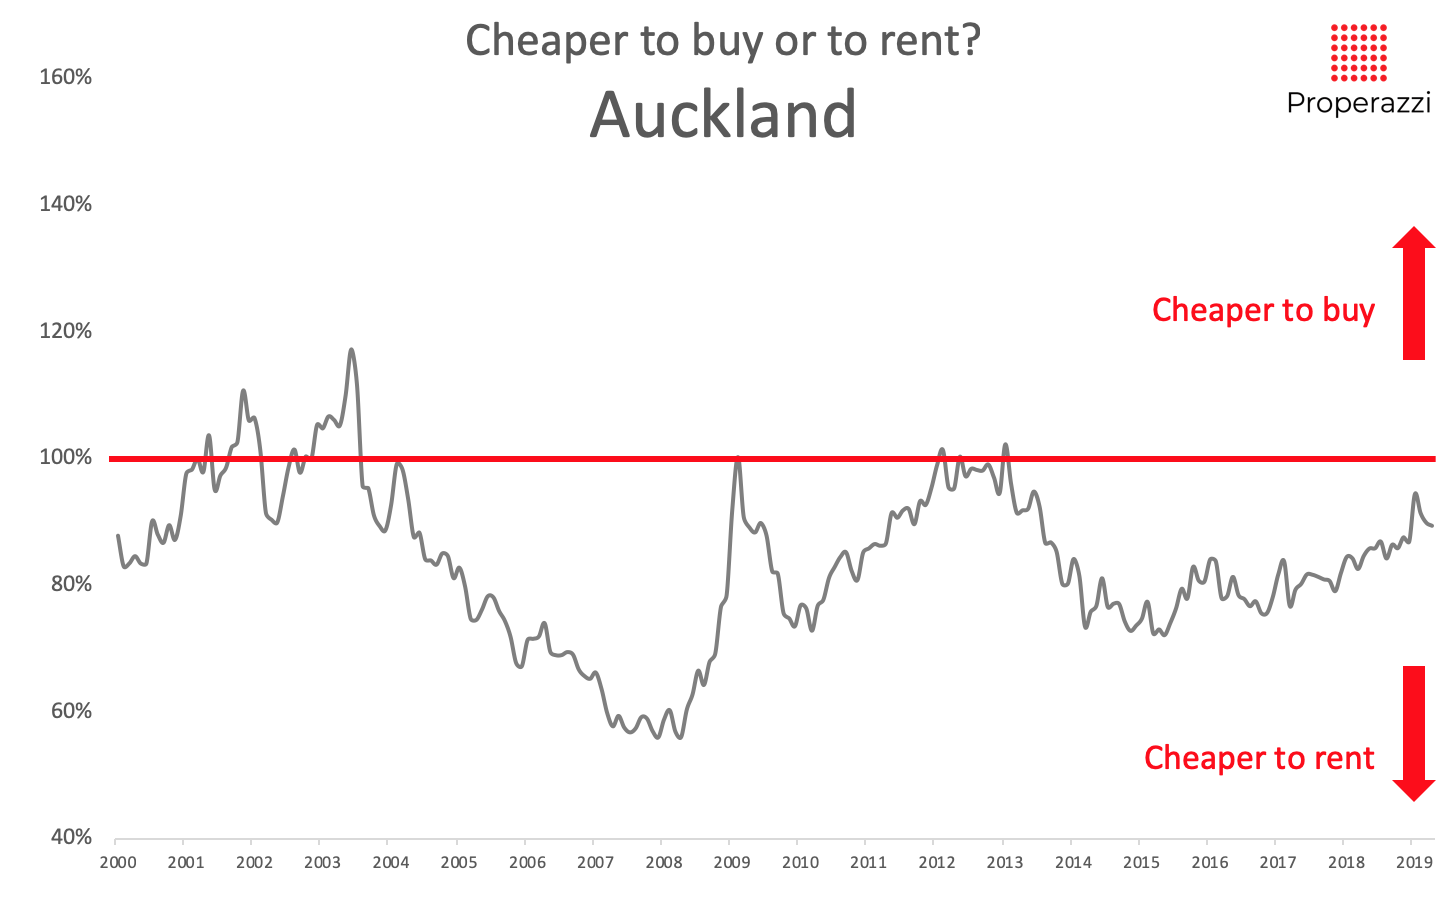 To rent or to buy - Auckland May 2019